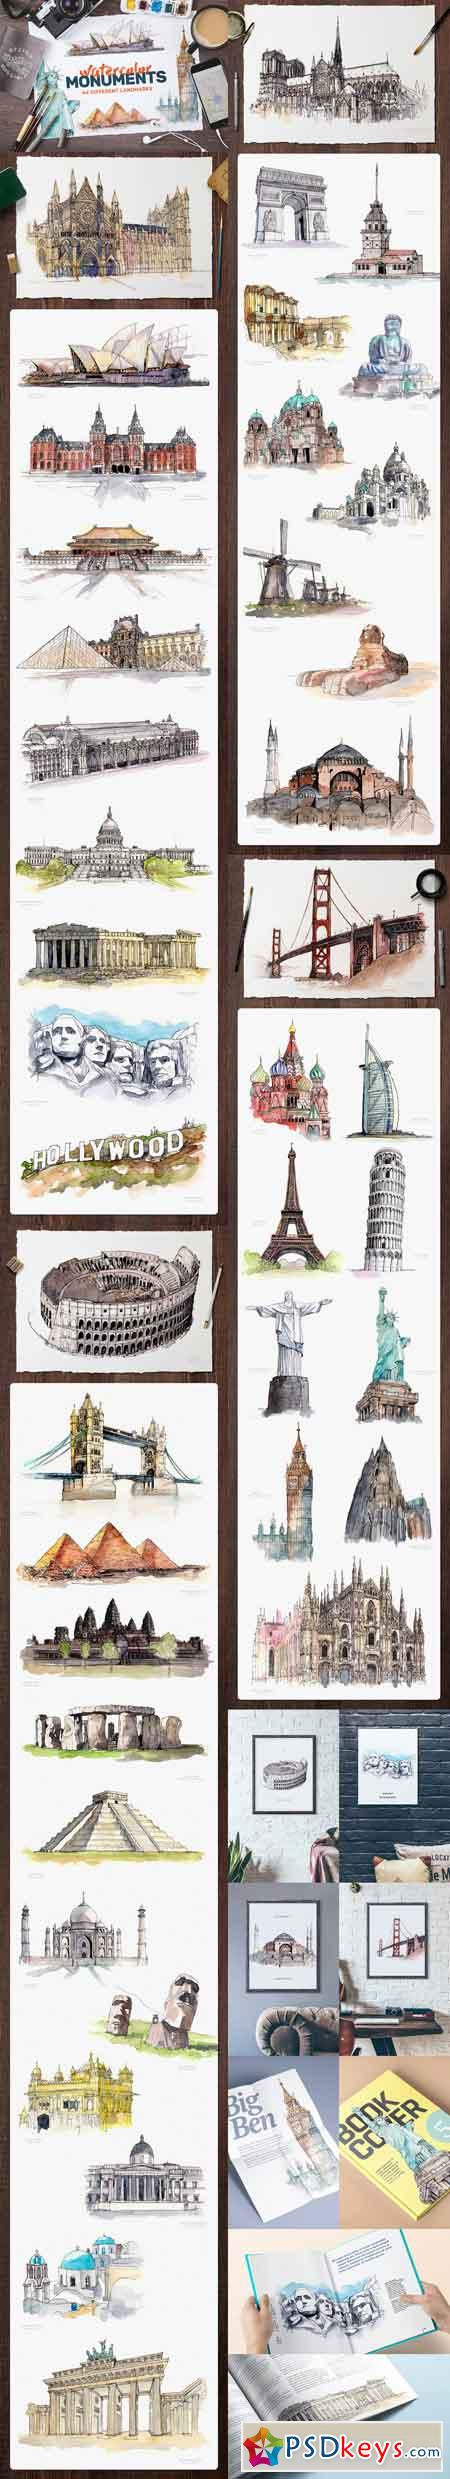 Watercolor Monument Paintings 706809